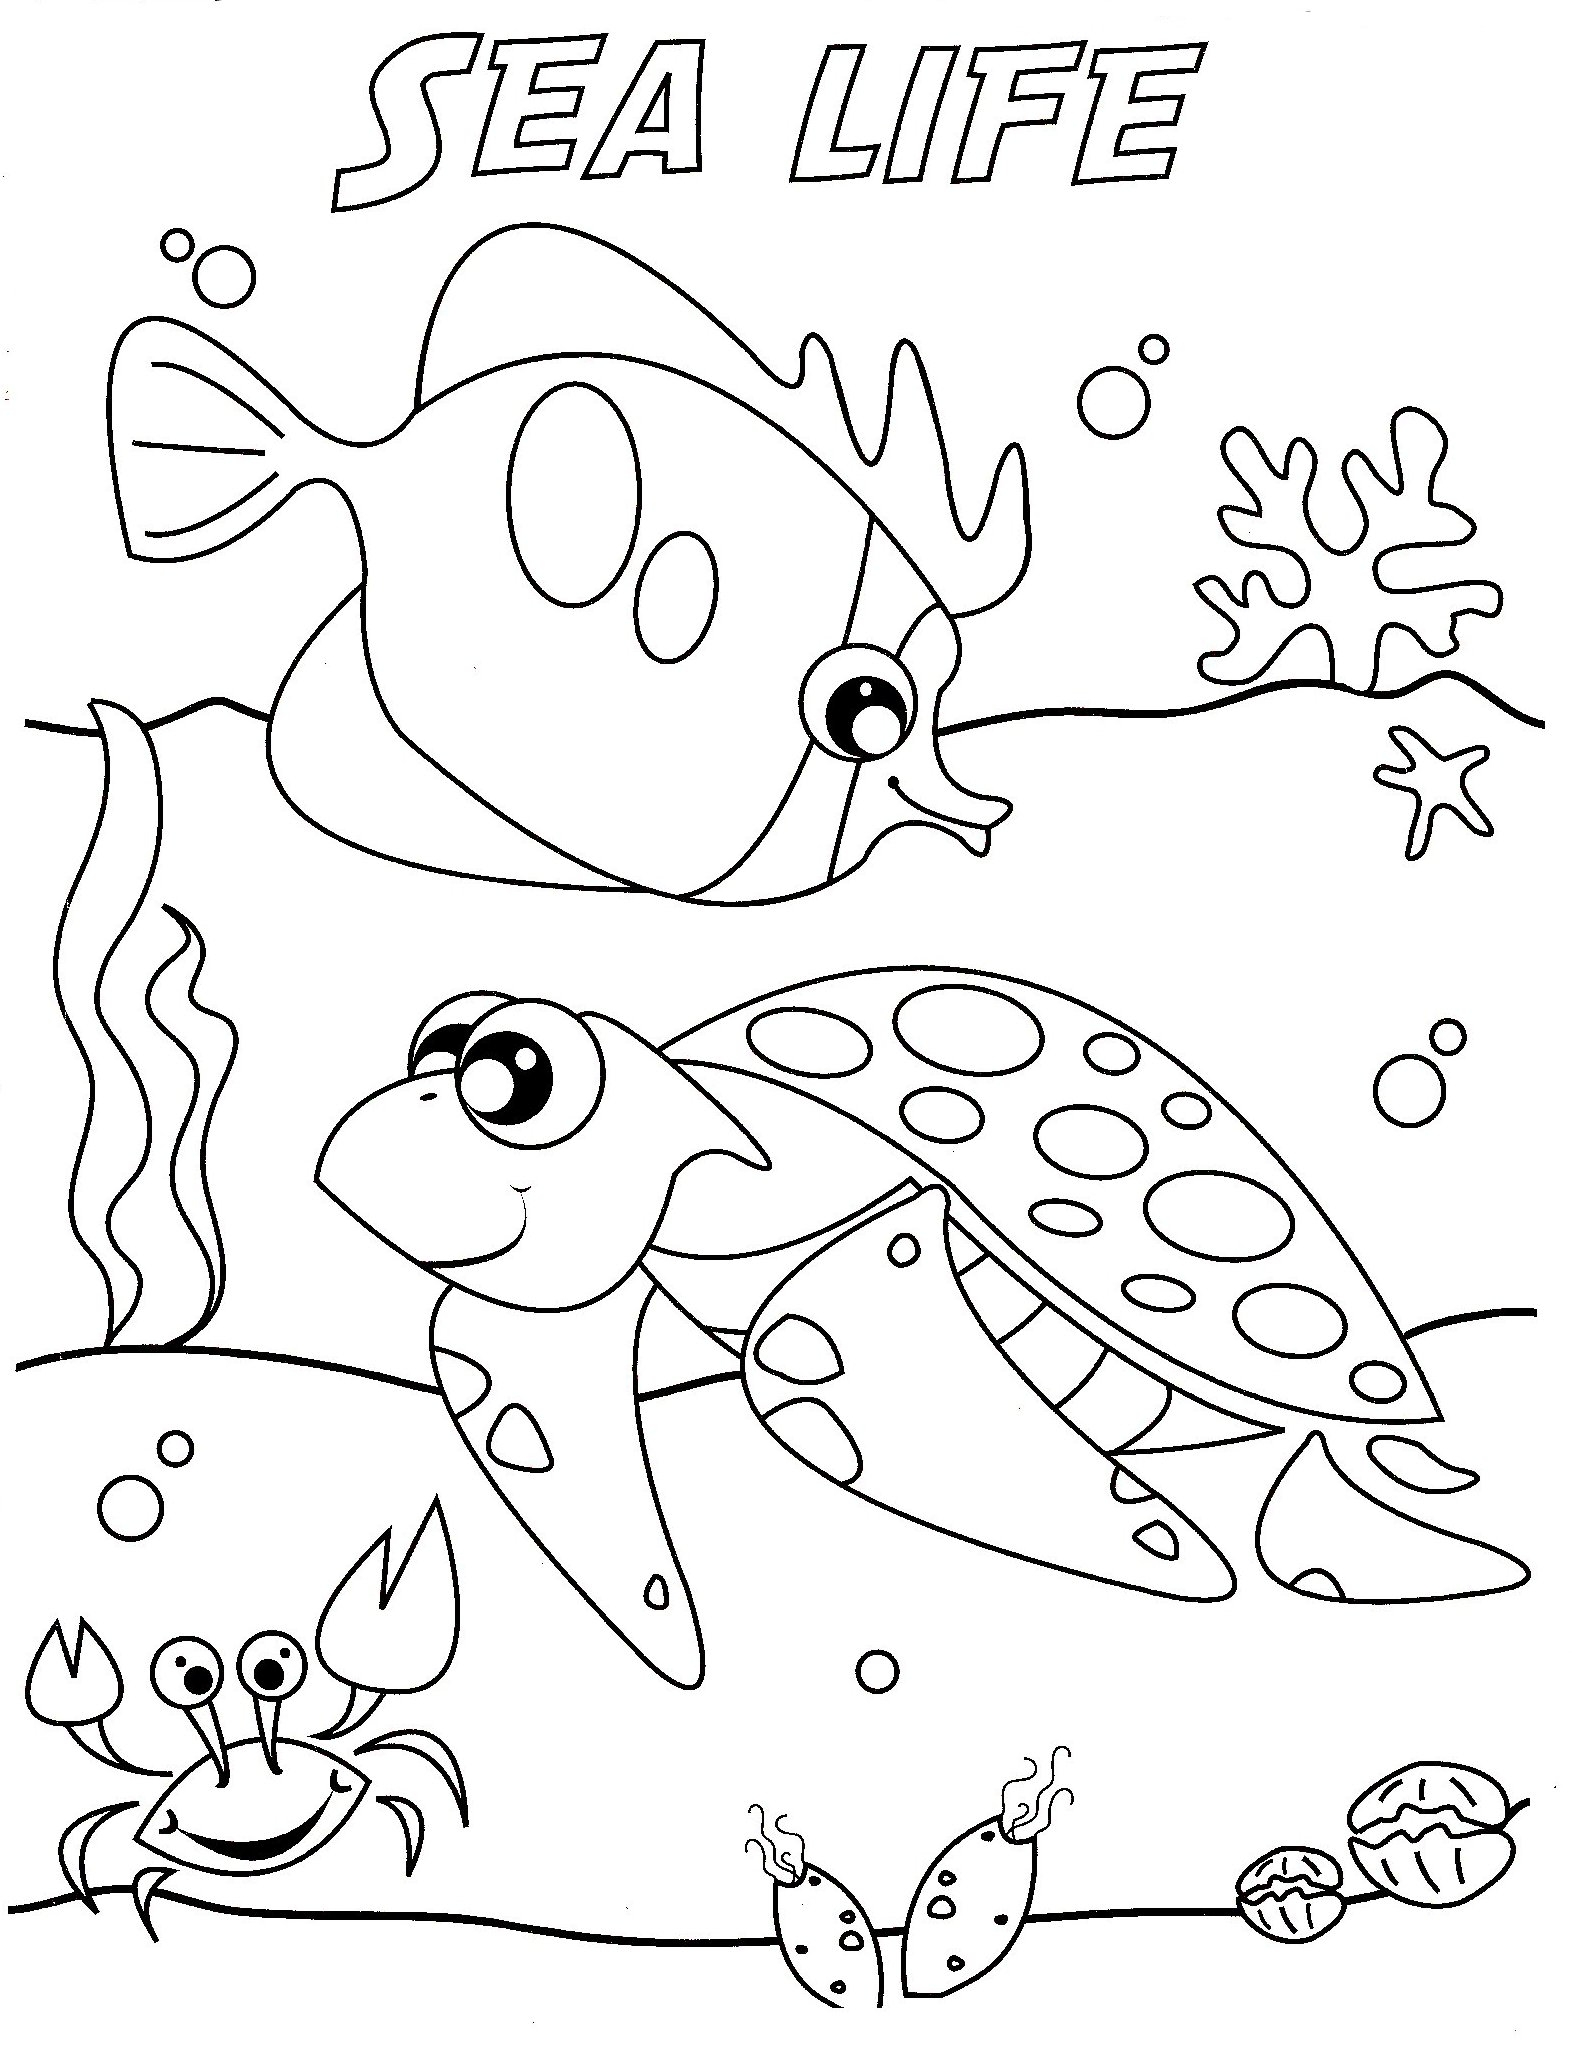 sea animals coloring pages - sea creature coloring